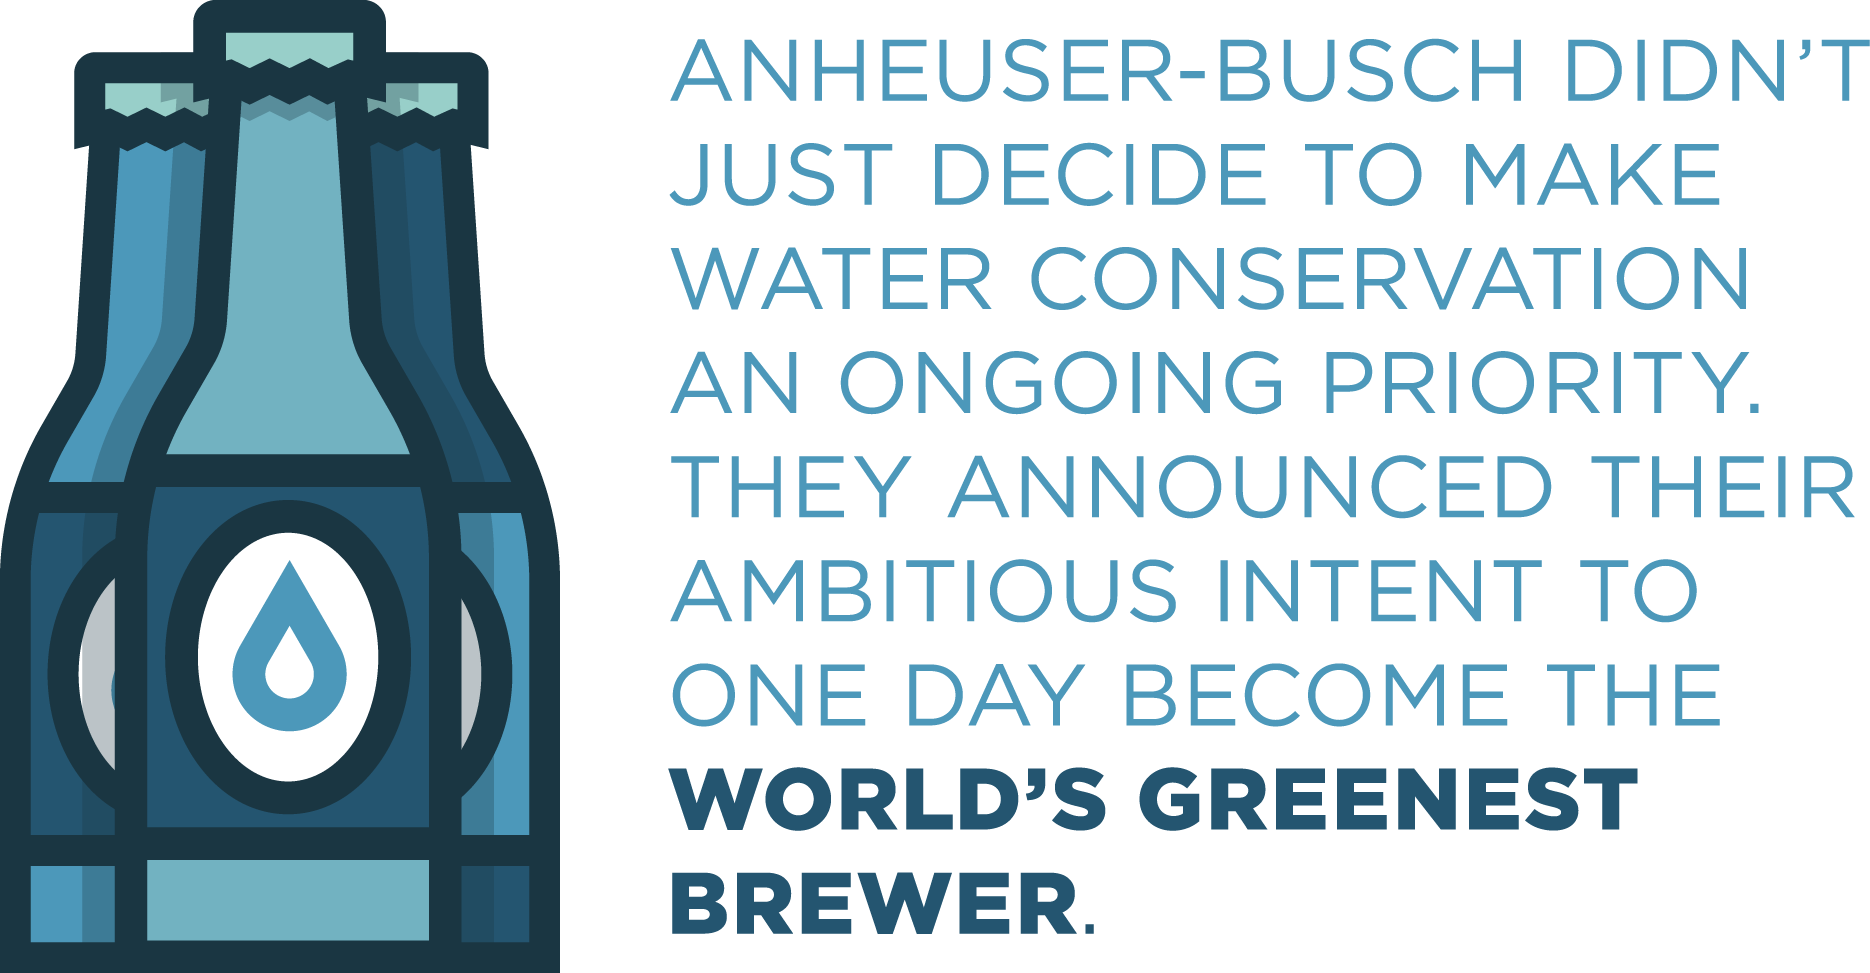 Anheuser-Busch-quote